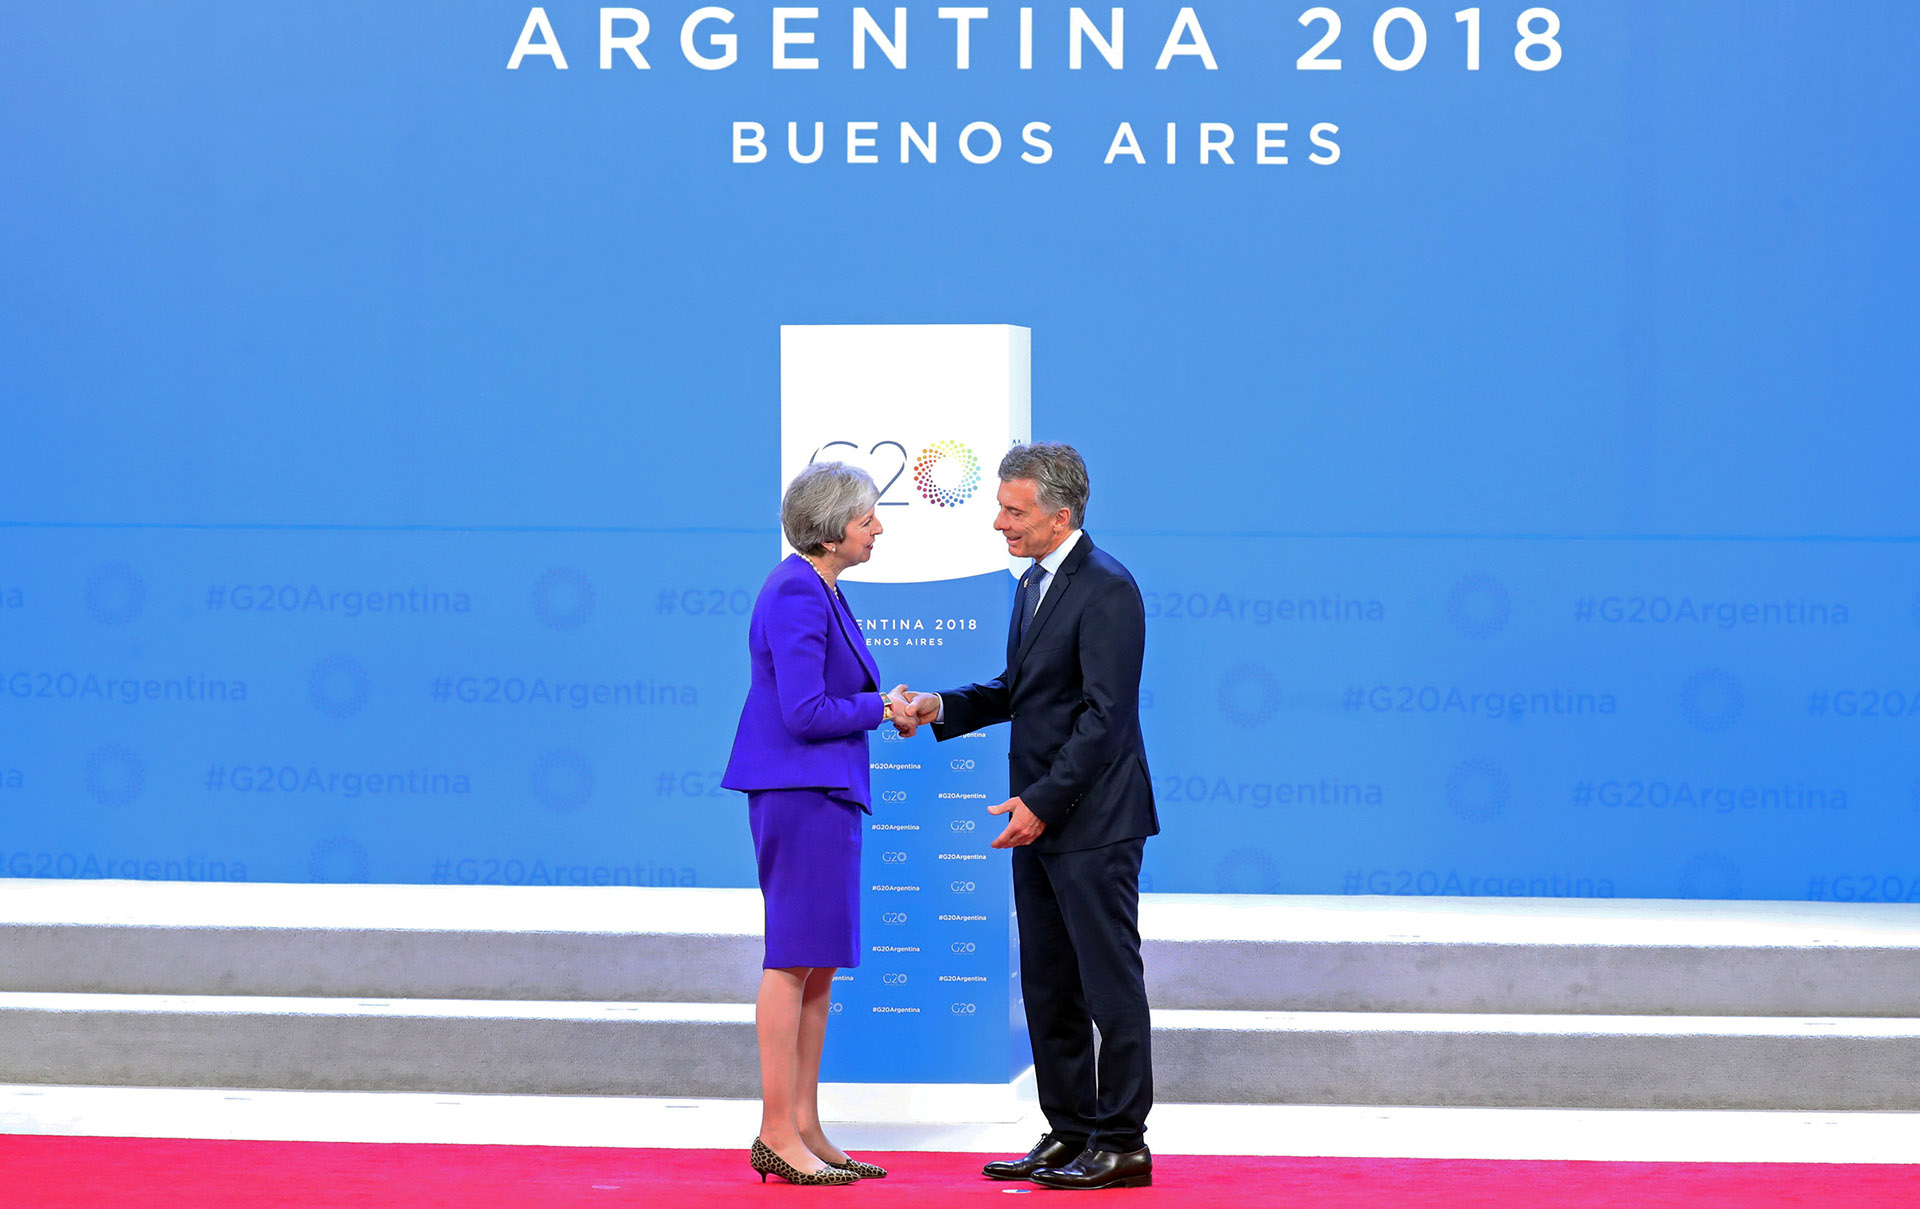 Theresa May y Macri